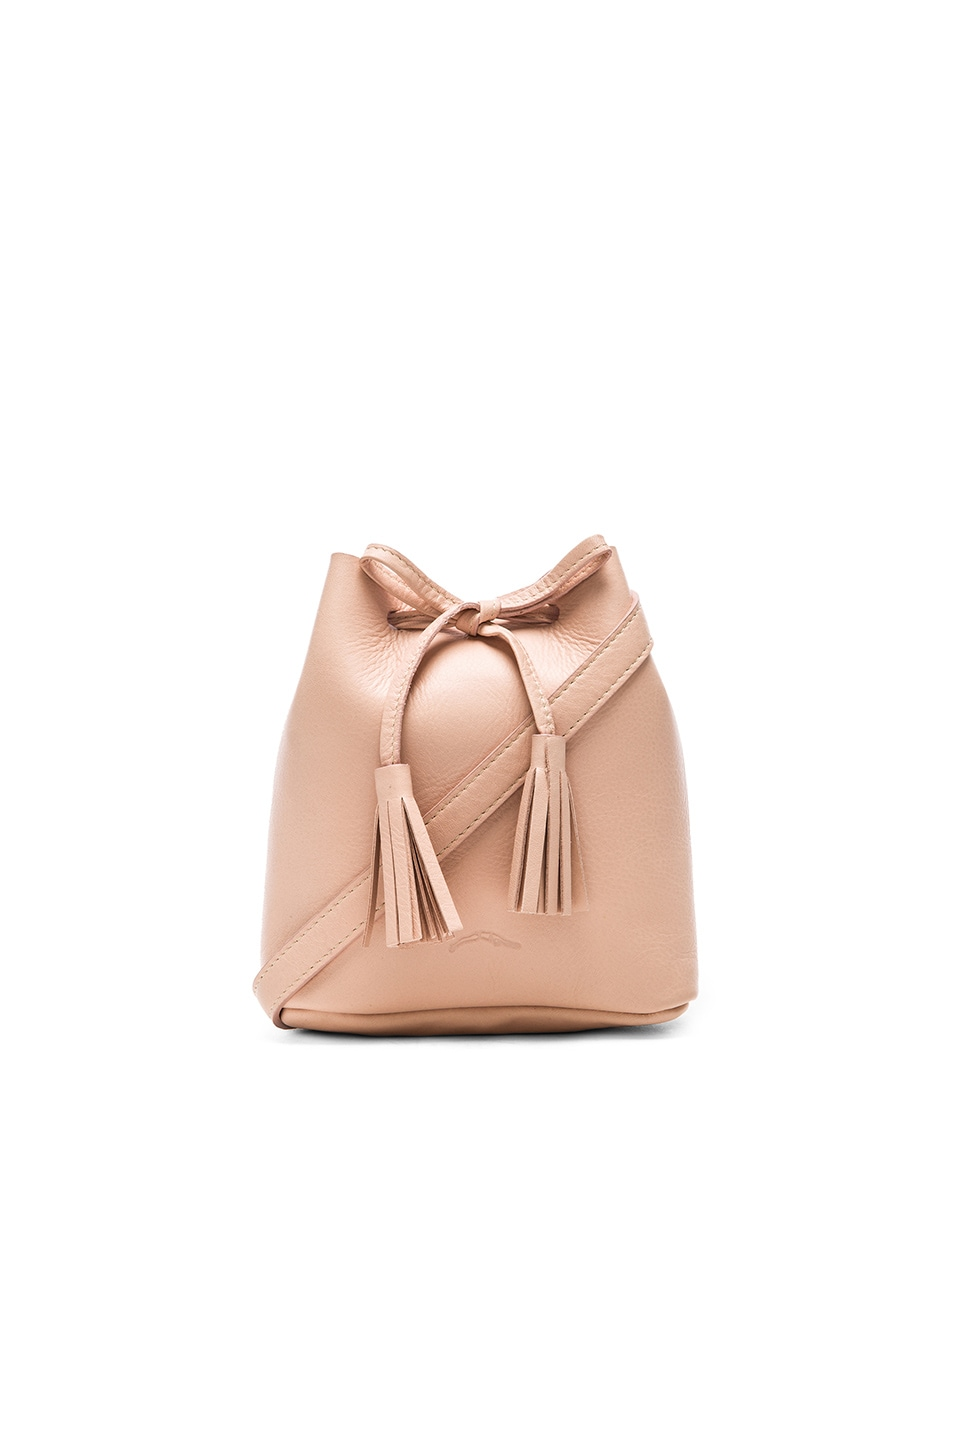 Shaffer The Greta Bucket Bag in Blush